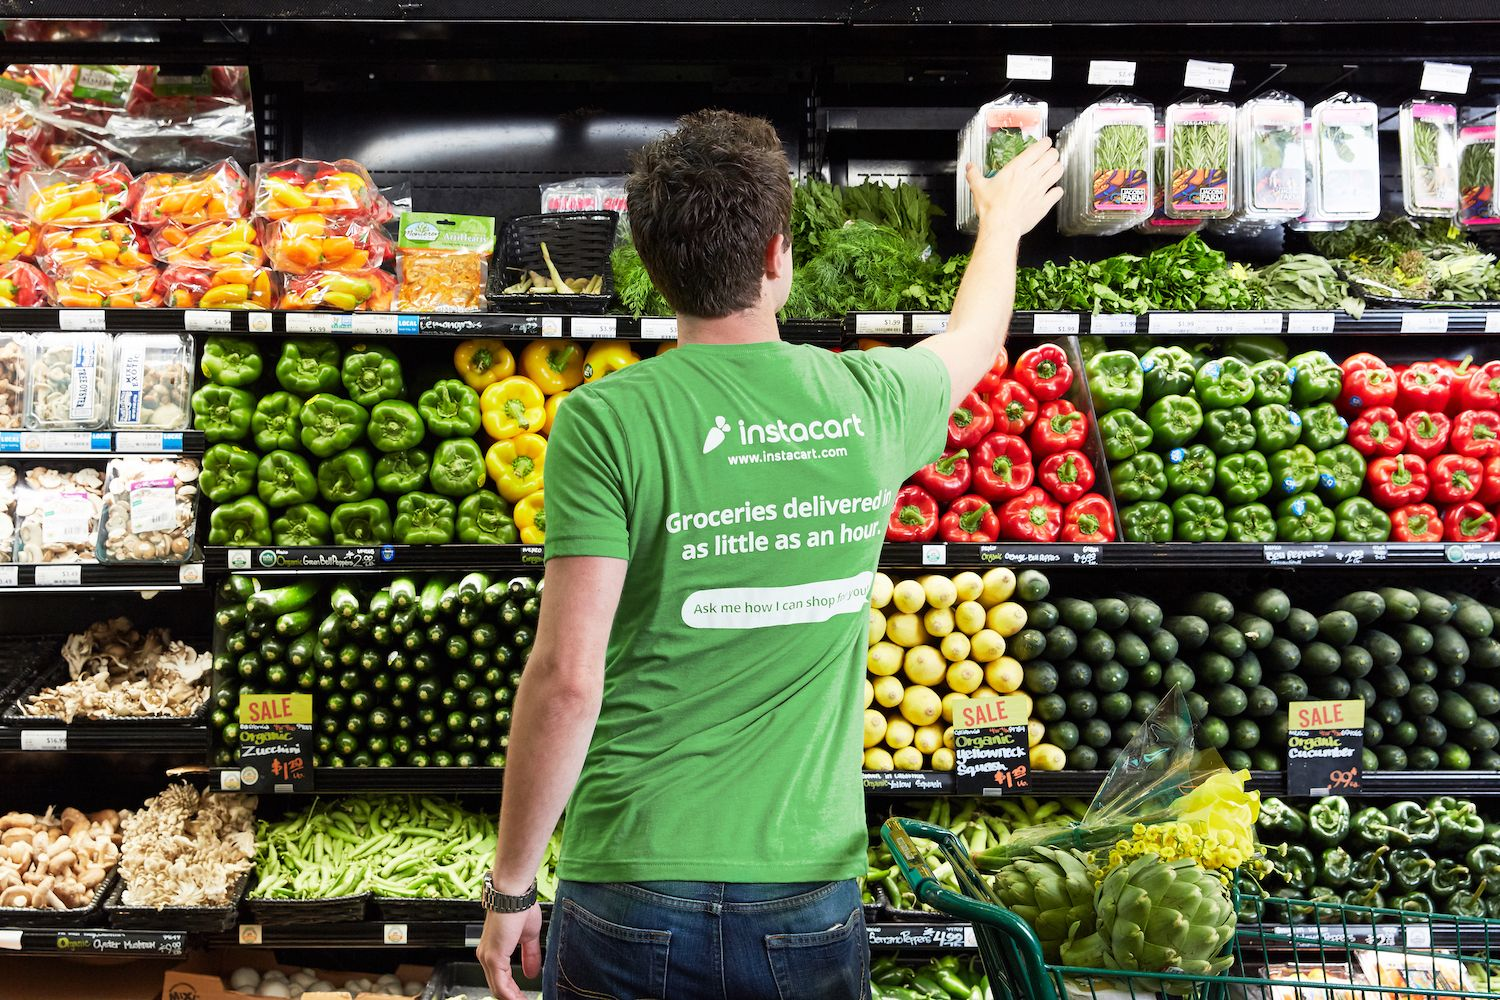 Instacart Nabs Another $225M